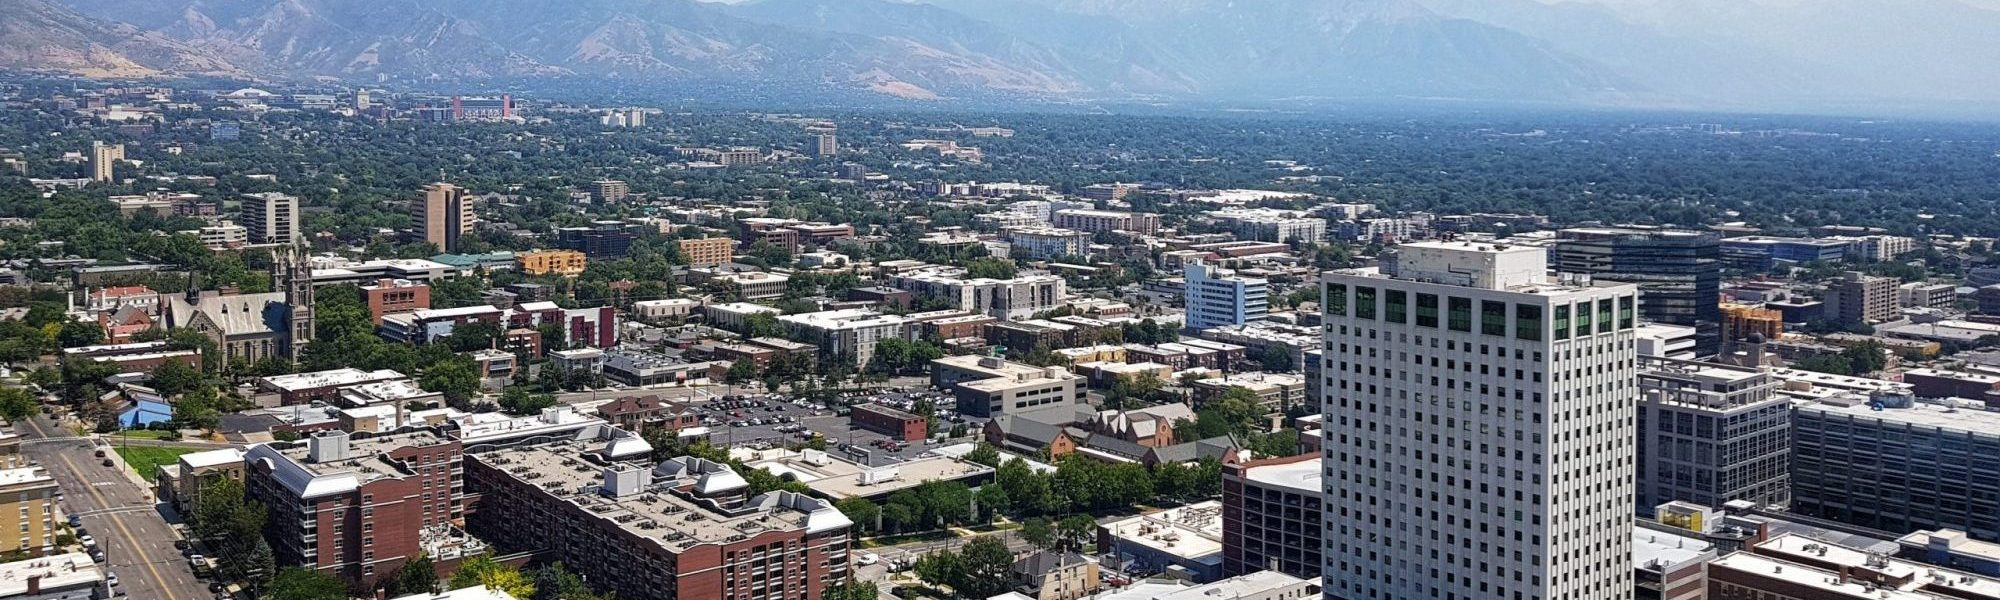 Join Utah Business and Utah's business community for our first-annual economic outlook event. With 300+ attendees, this economic summit is the perfect economic outlook event for Utah's business leaders. We can't wait to see you at the 2021 Economic Outlook summit!